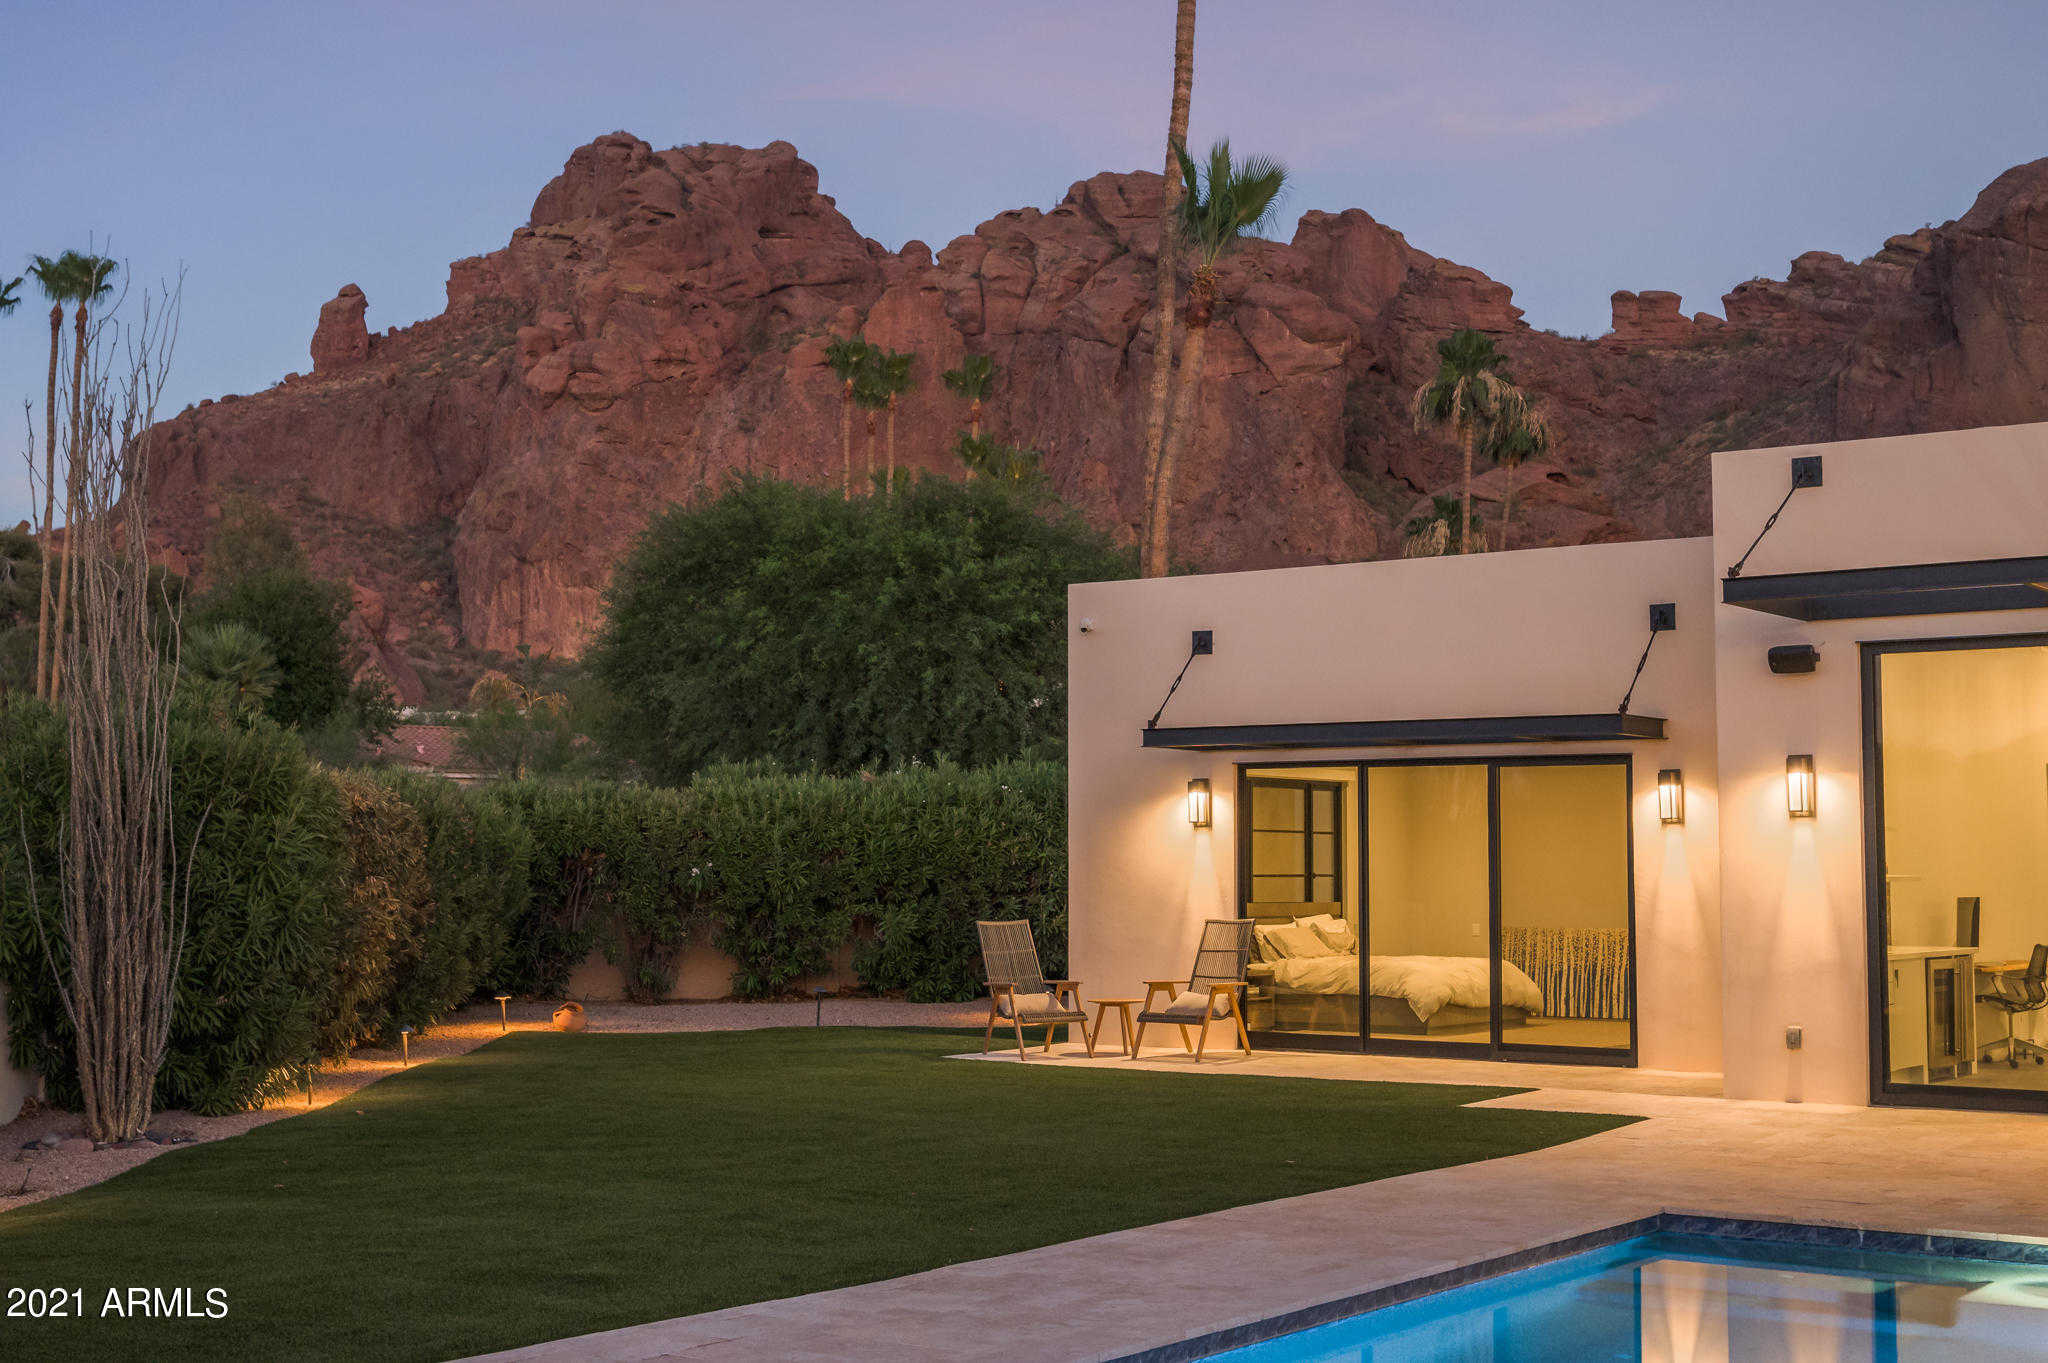 $3,925,000 - 4Br/5Ba - Home for Sale in Heritage Hills Unit 2, Phoenix